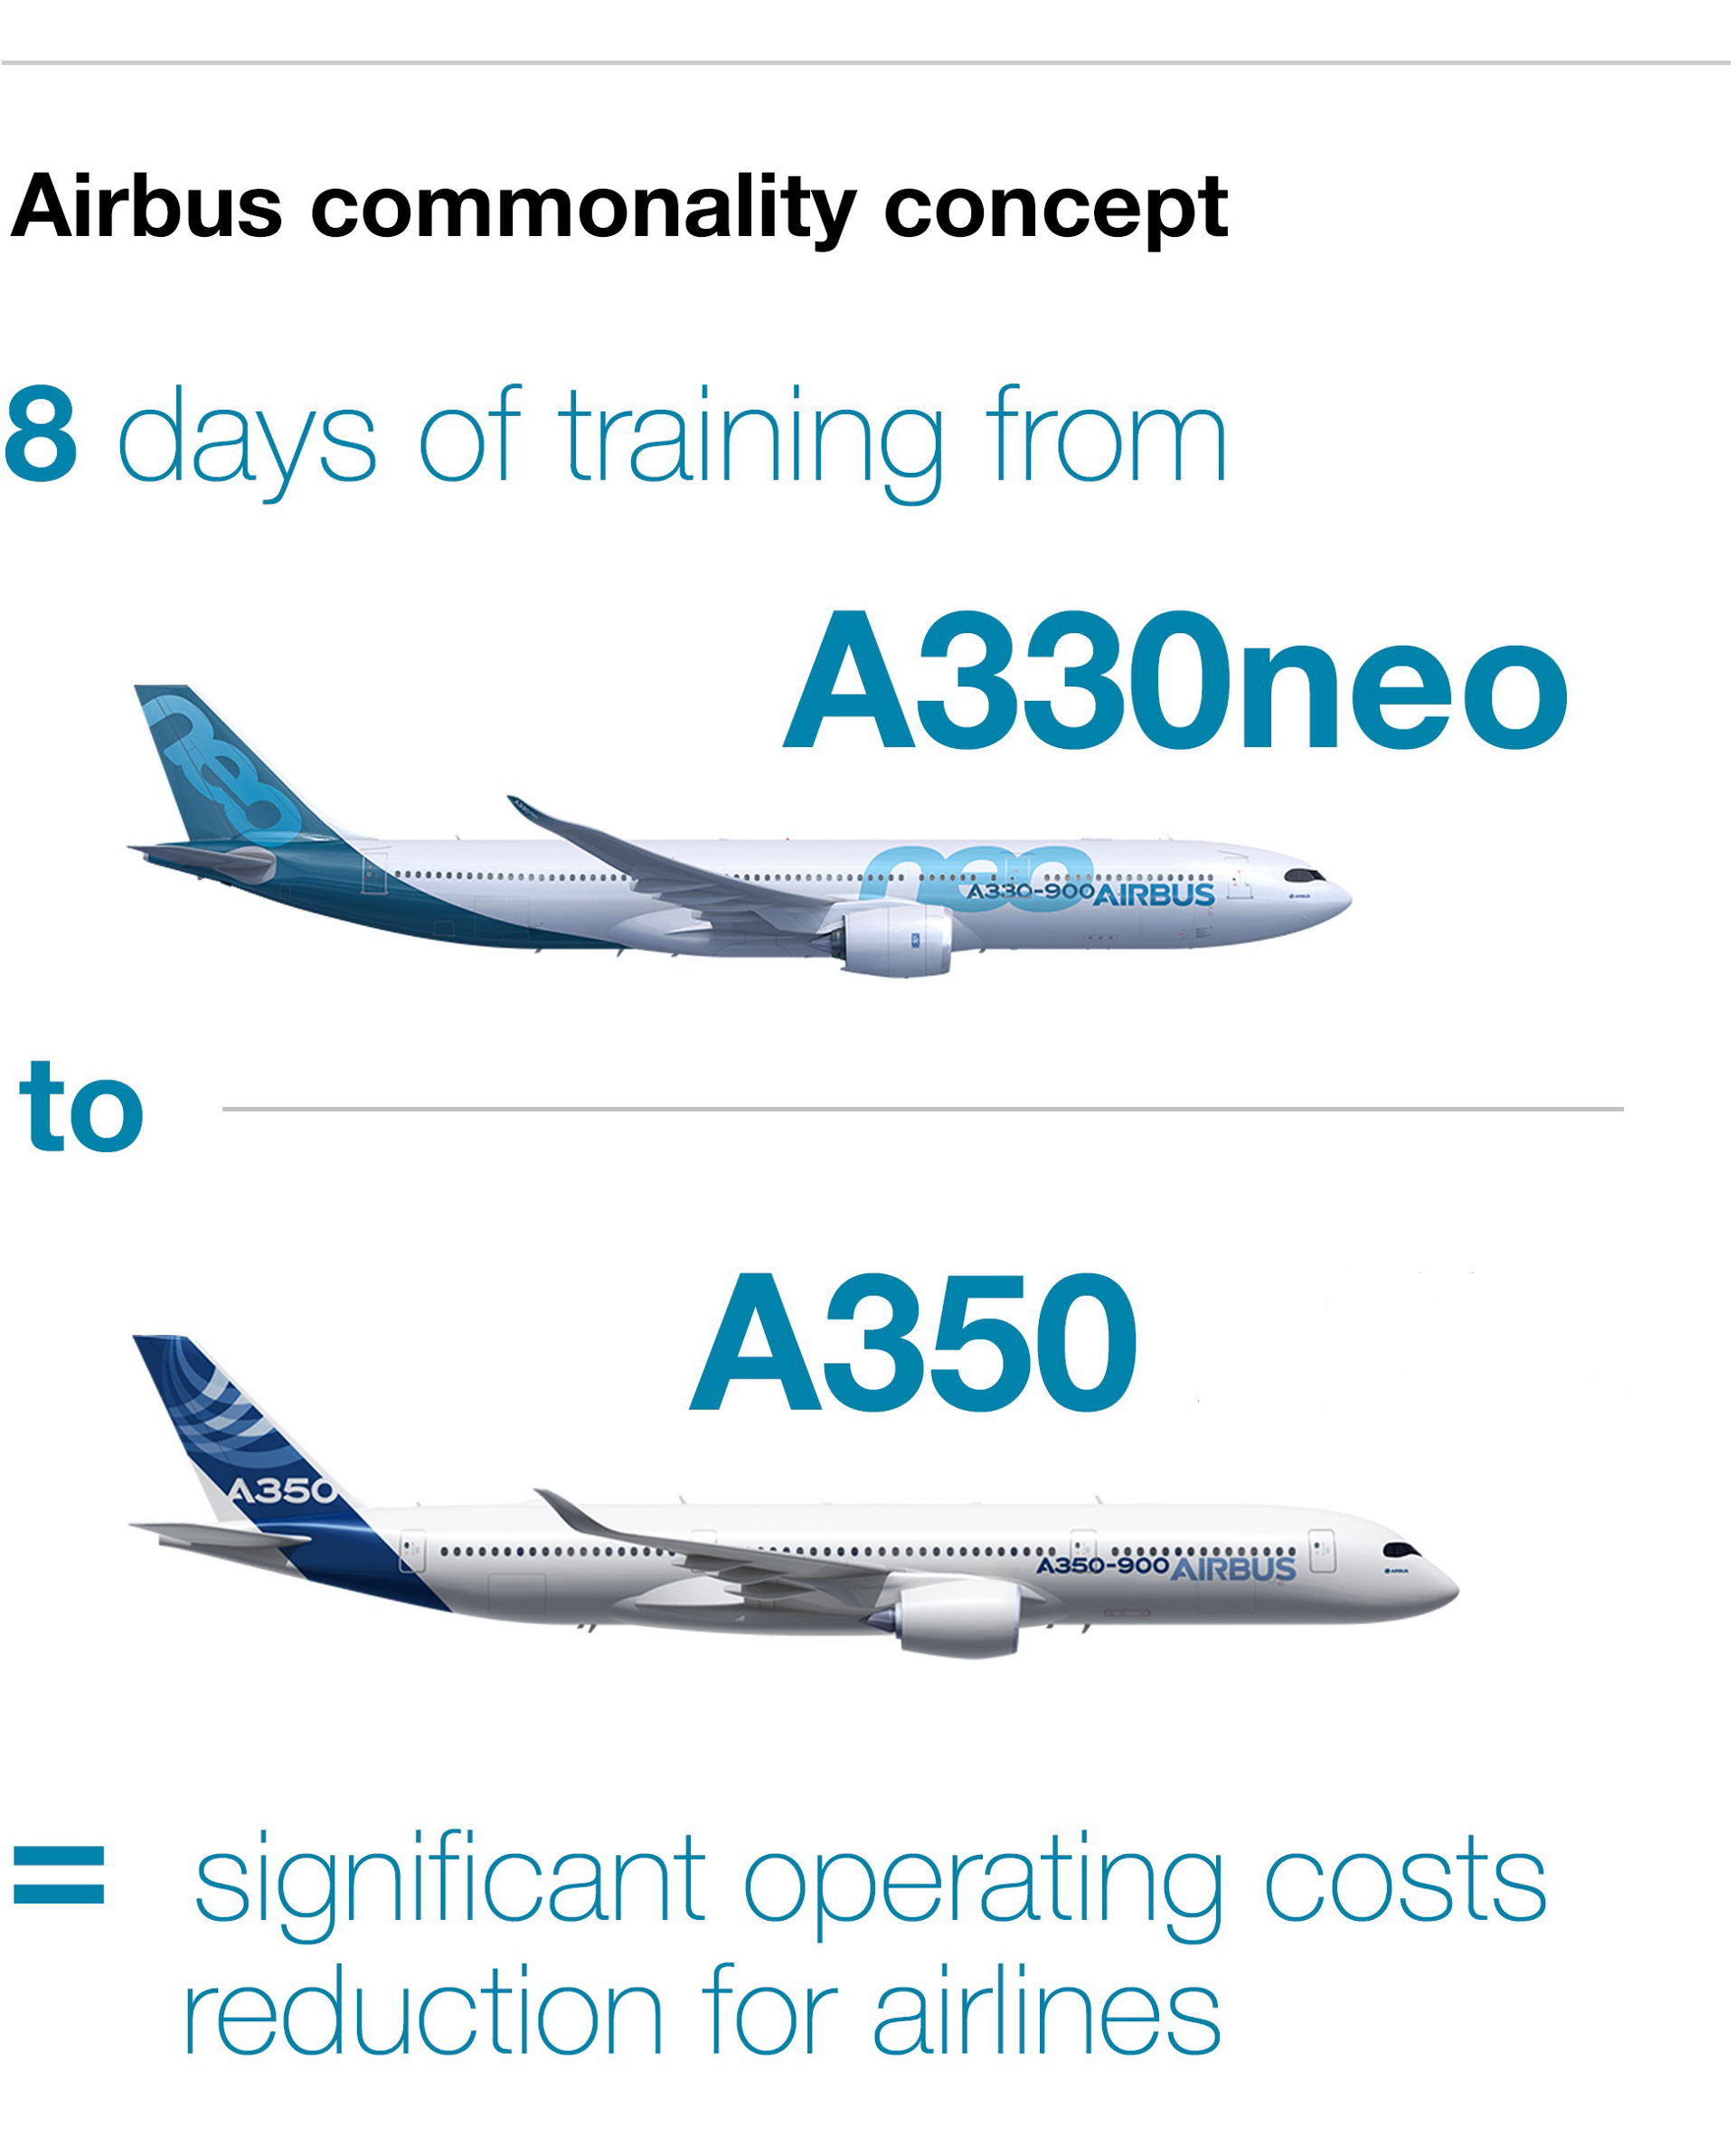 Commonality Infographic A330neo & A350